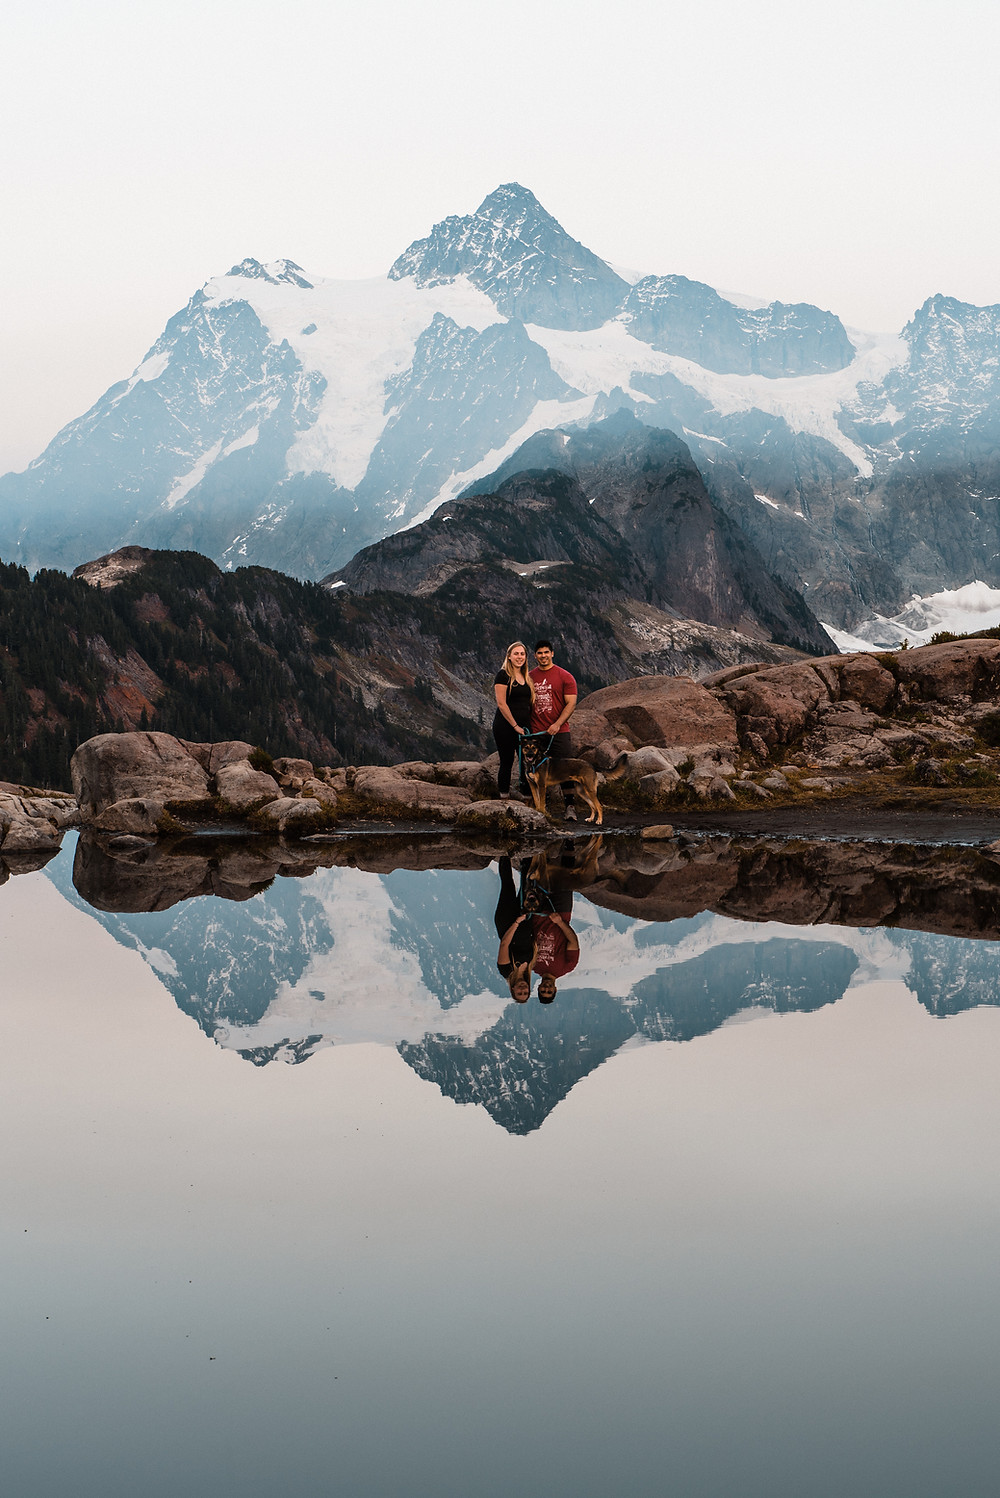 A couple and their reflections at Artist Point in Washington